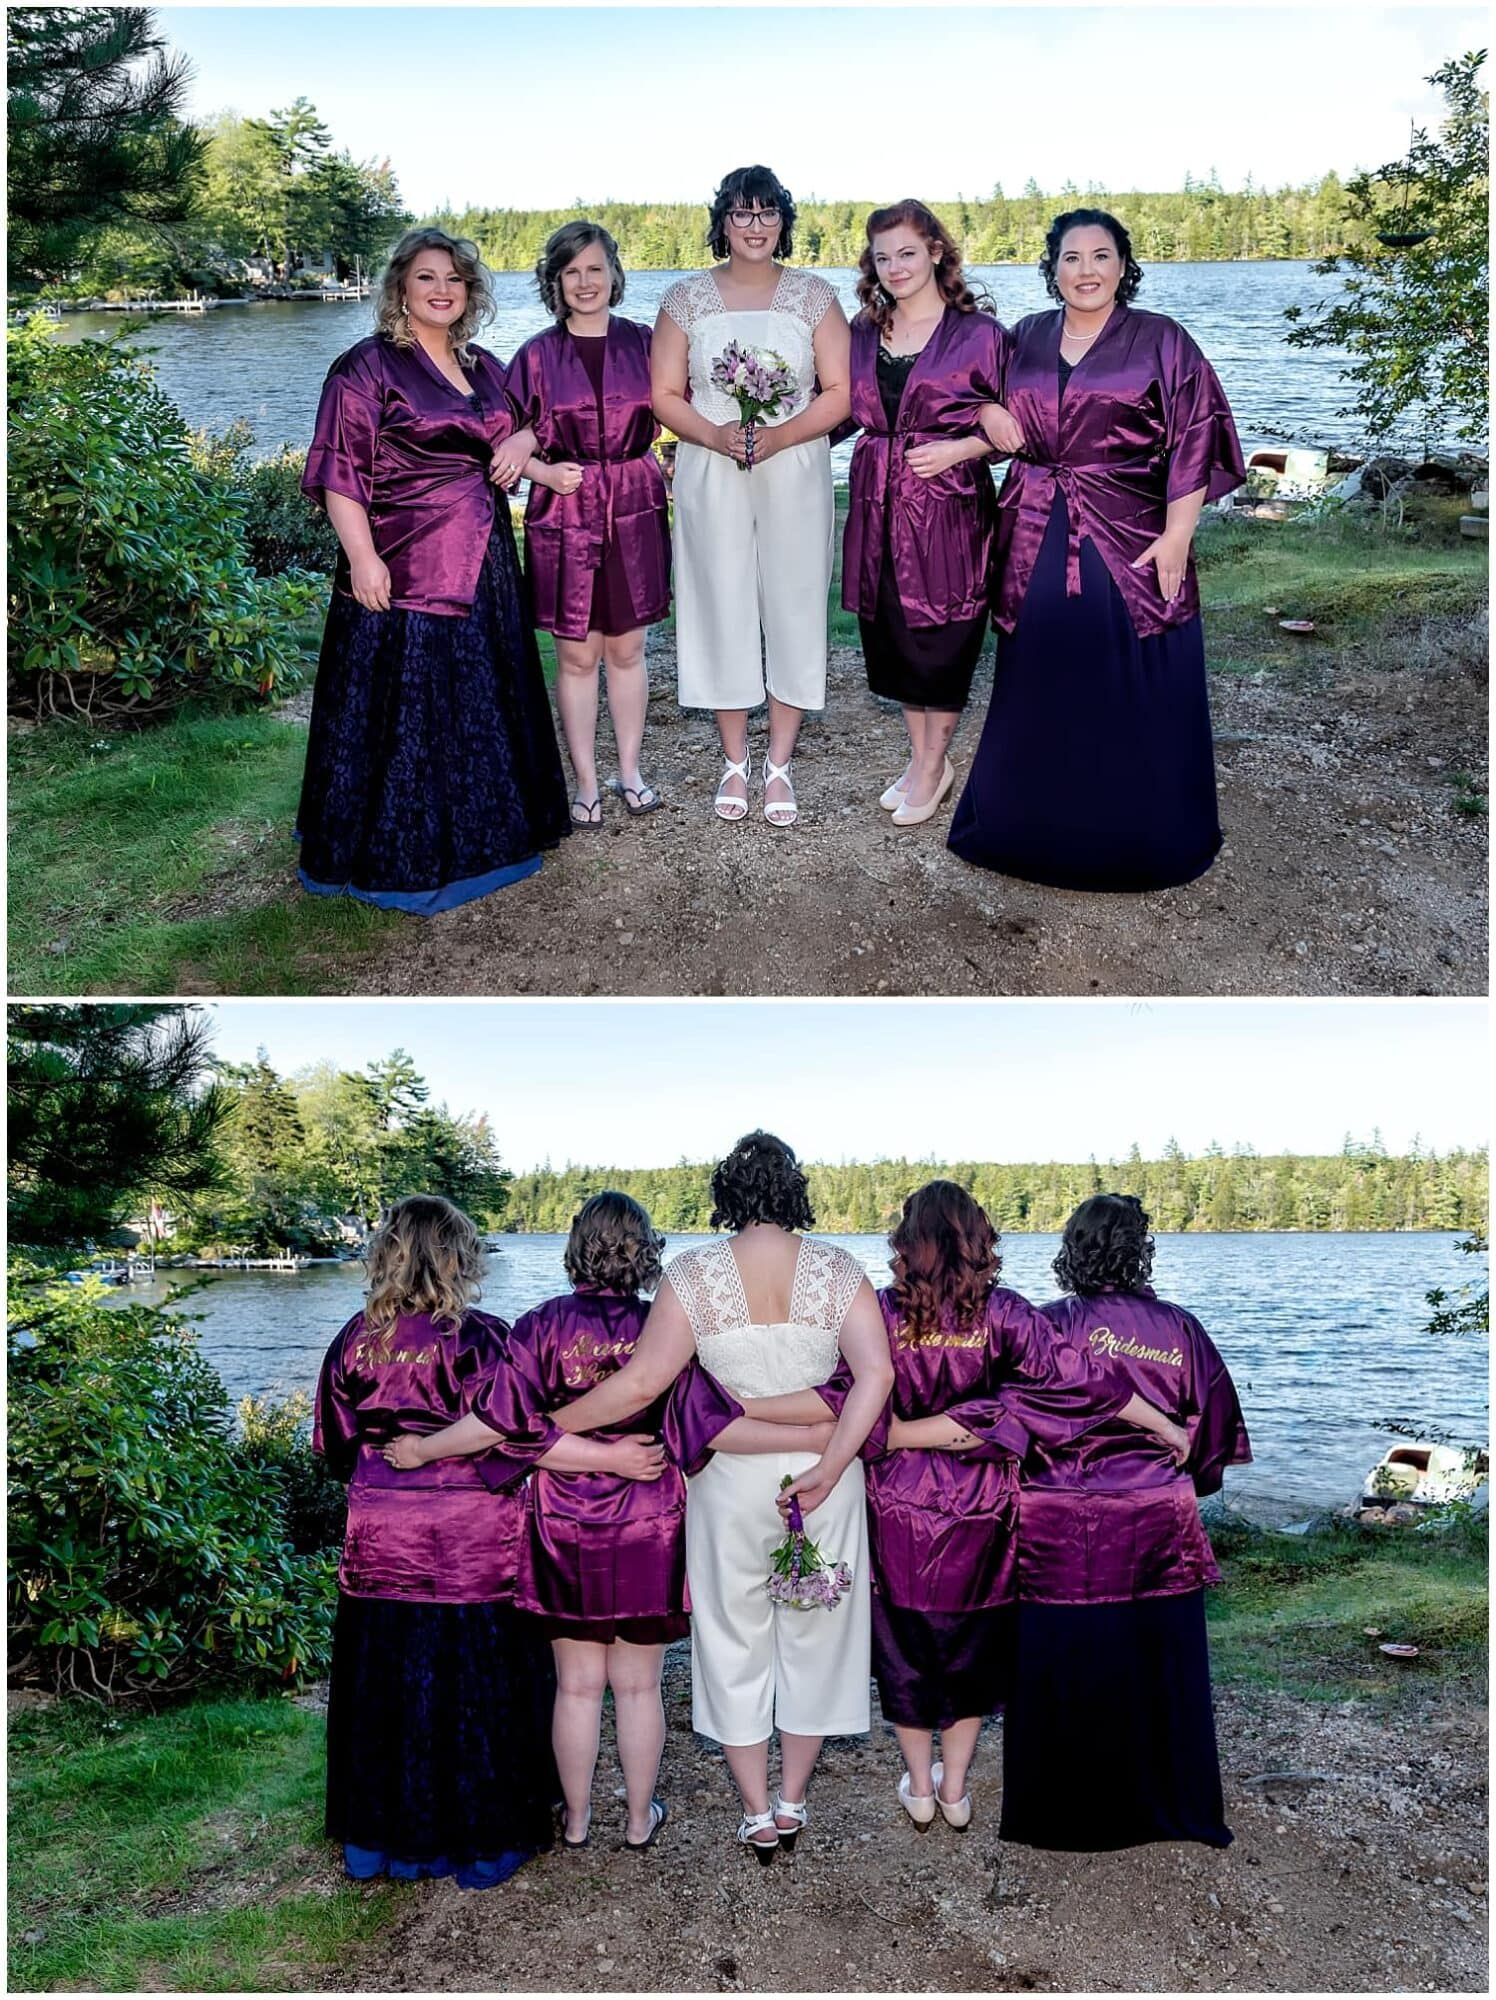 A bride with bridesmaids during the bridal prep for her backyard wedding in Hubbards NS.